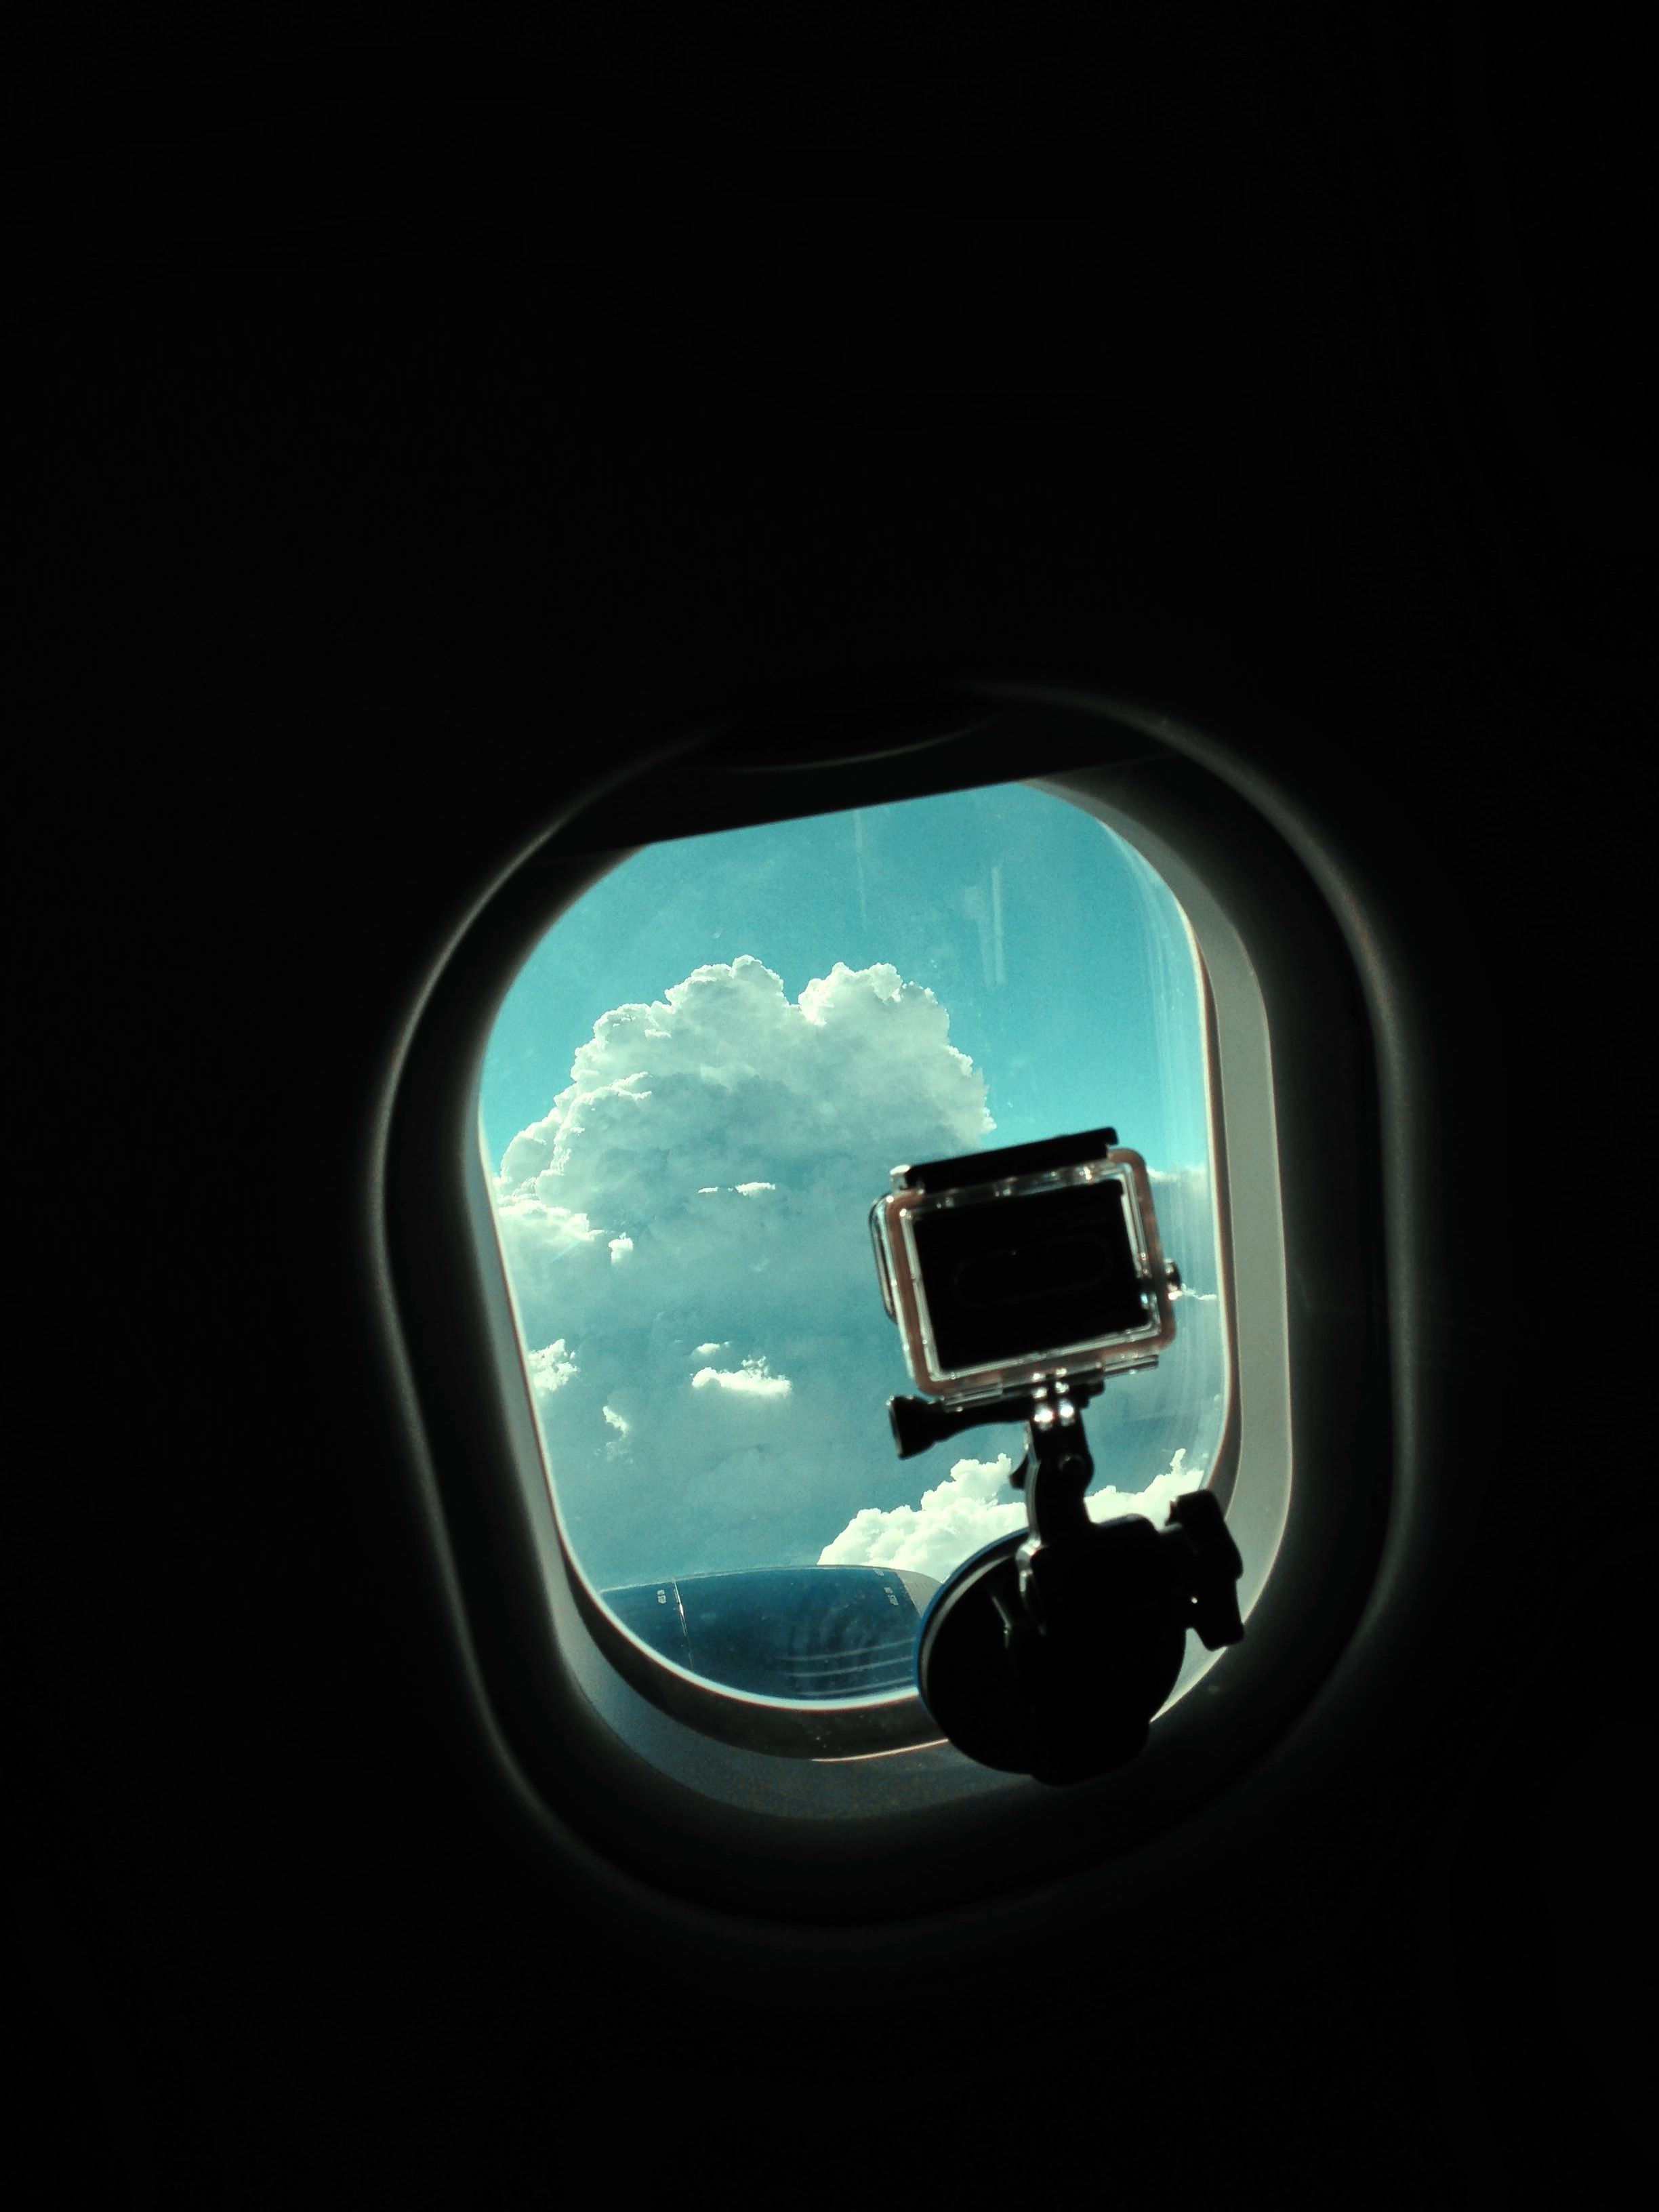 Shooting a Go Pro 3 time lapse out of the window on the way to France.